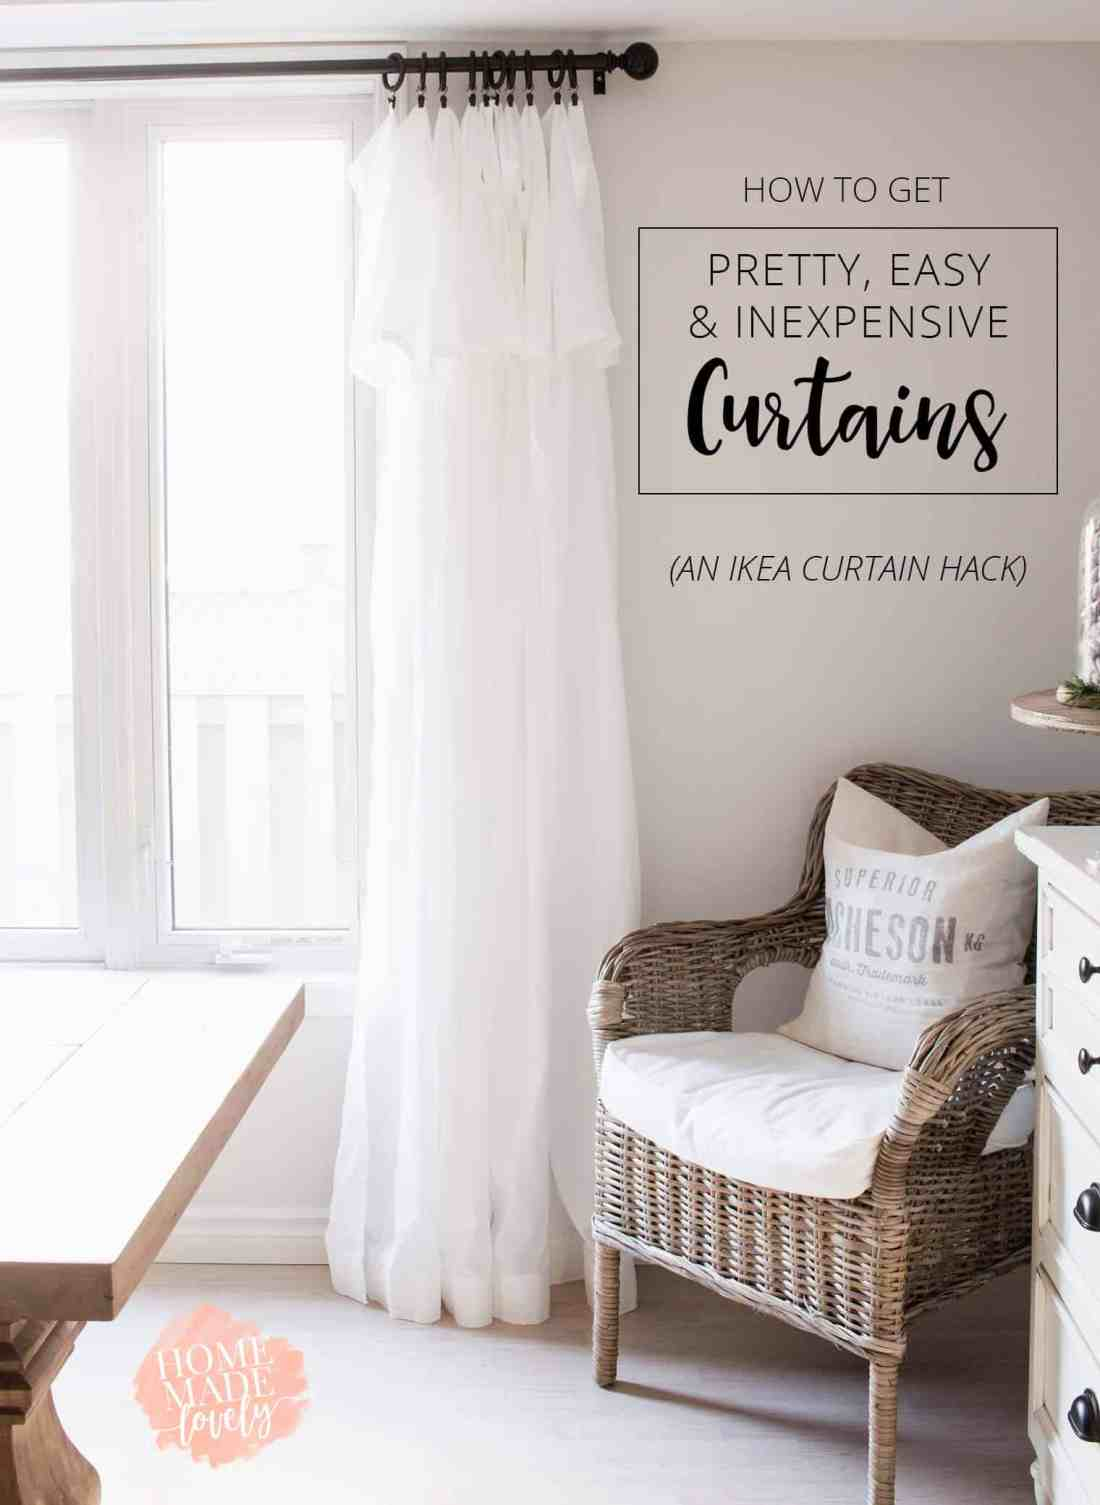 Curtains are often expensive or just plain ugly! Get pretty, easy, inexpensive curtains with this simple Ikea Curtain Hack!